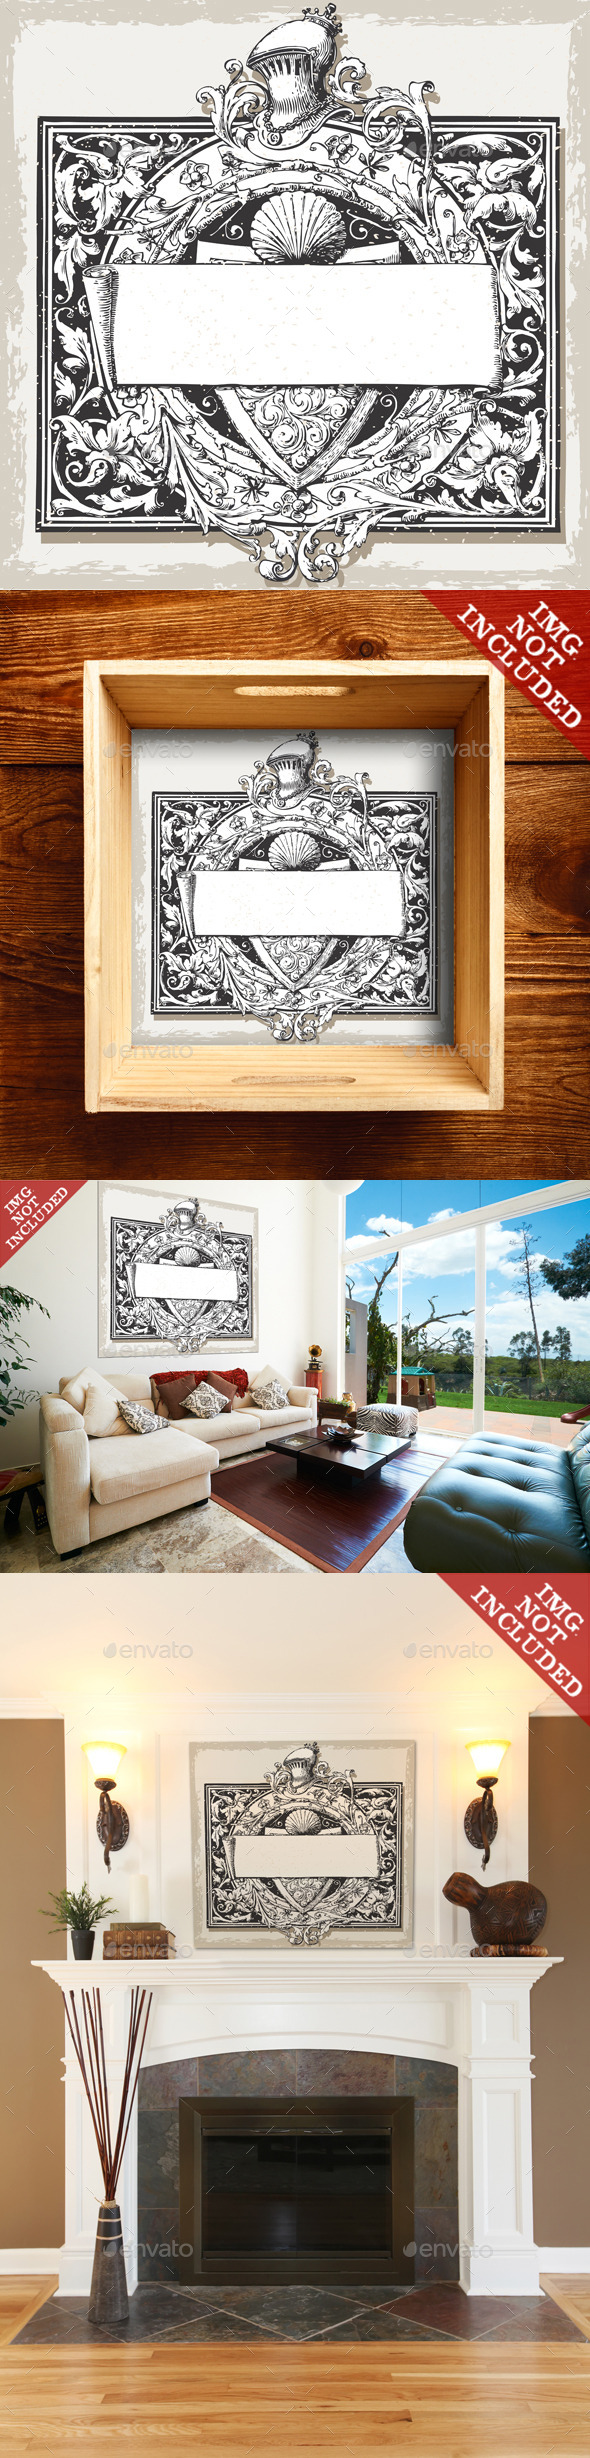 Vintage Floral Frame with Elm and Title Block - Decorative Vectors